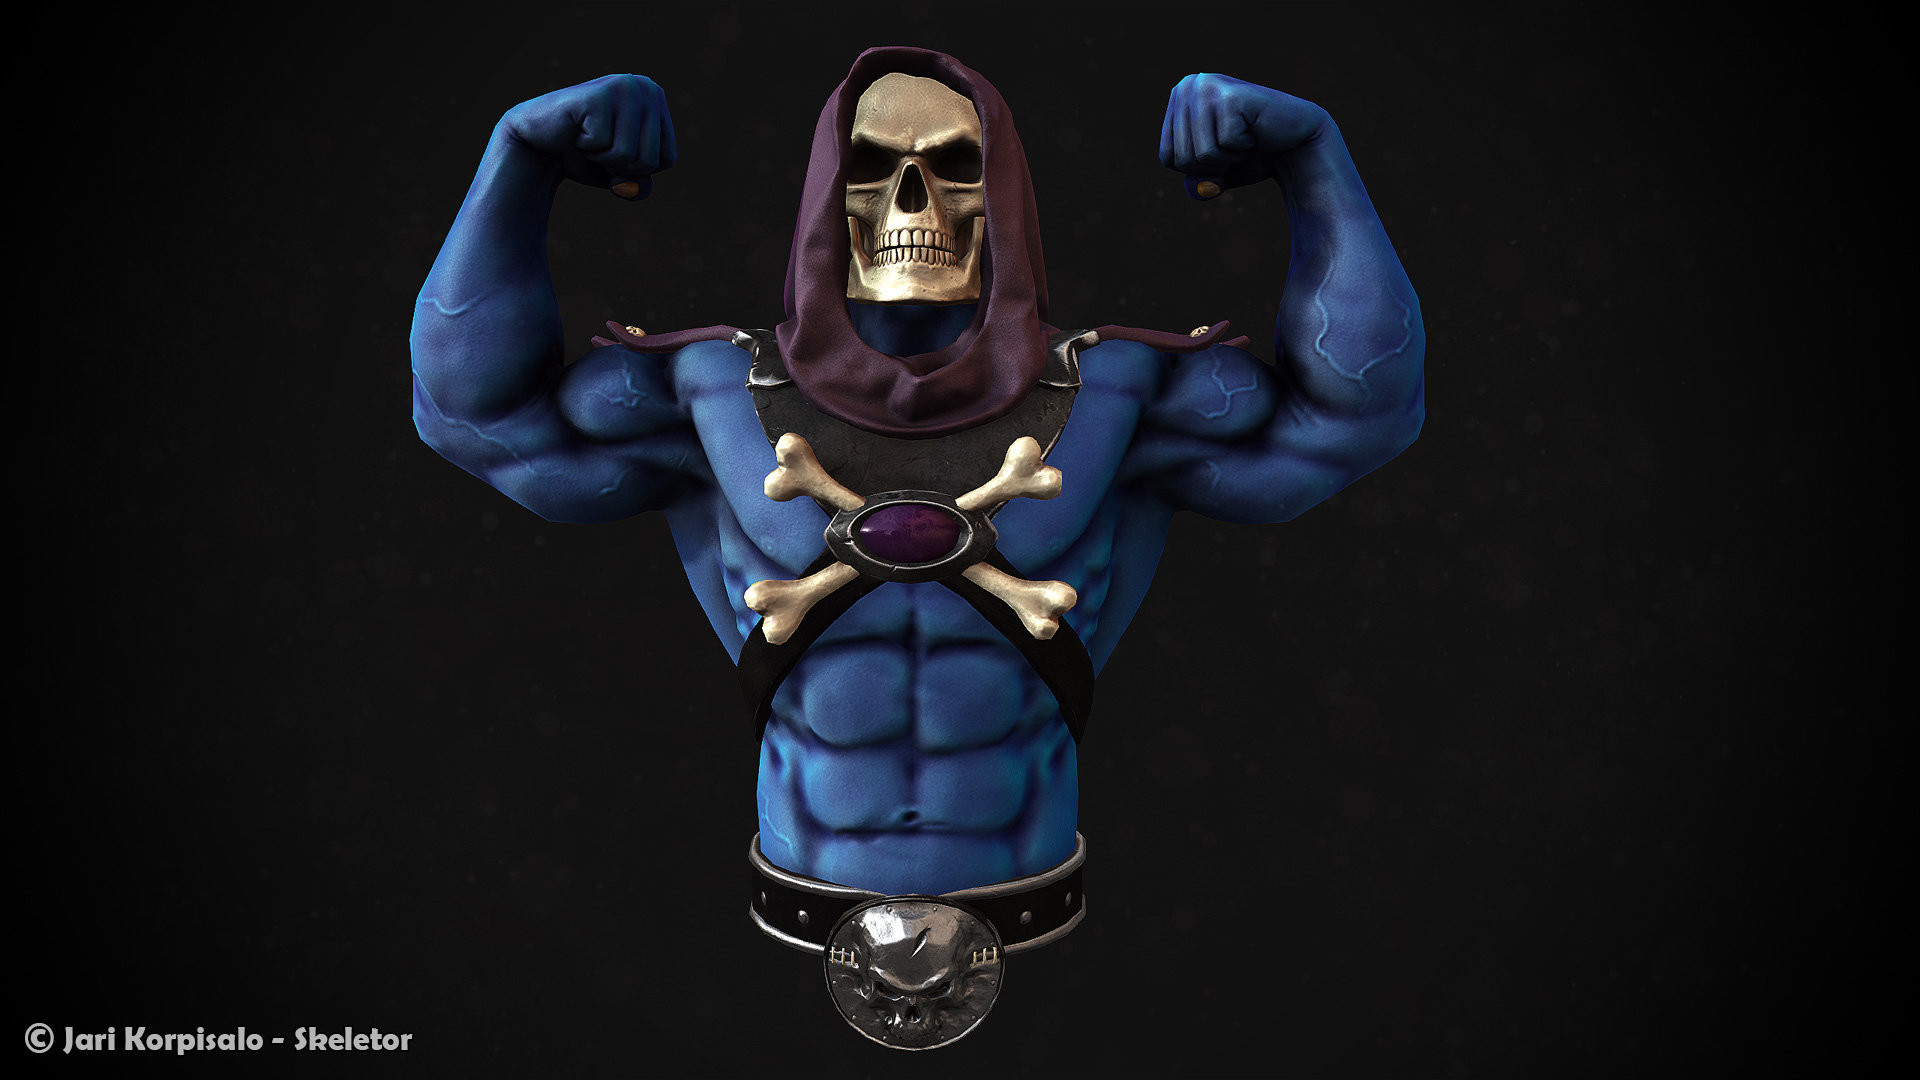 skeletor wallpaper 68 images